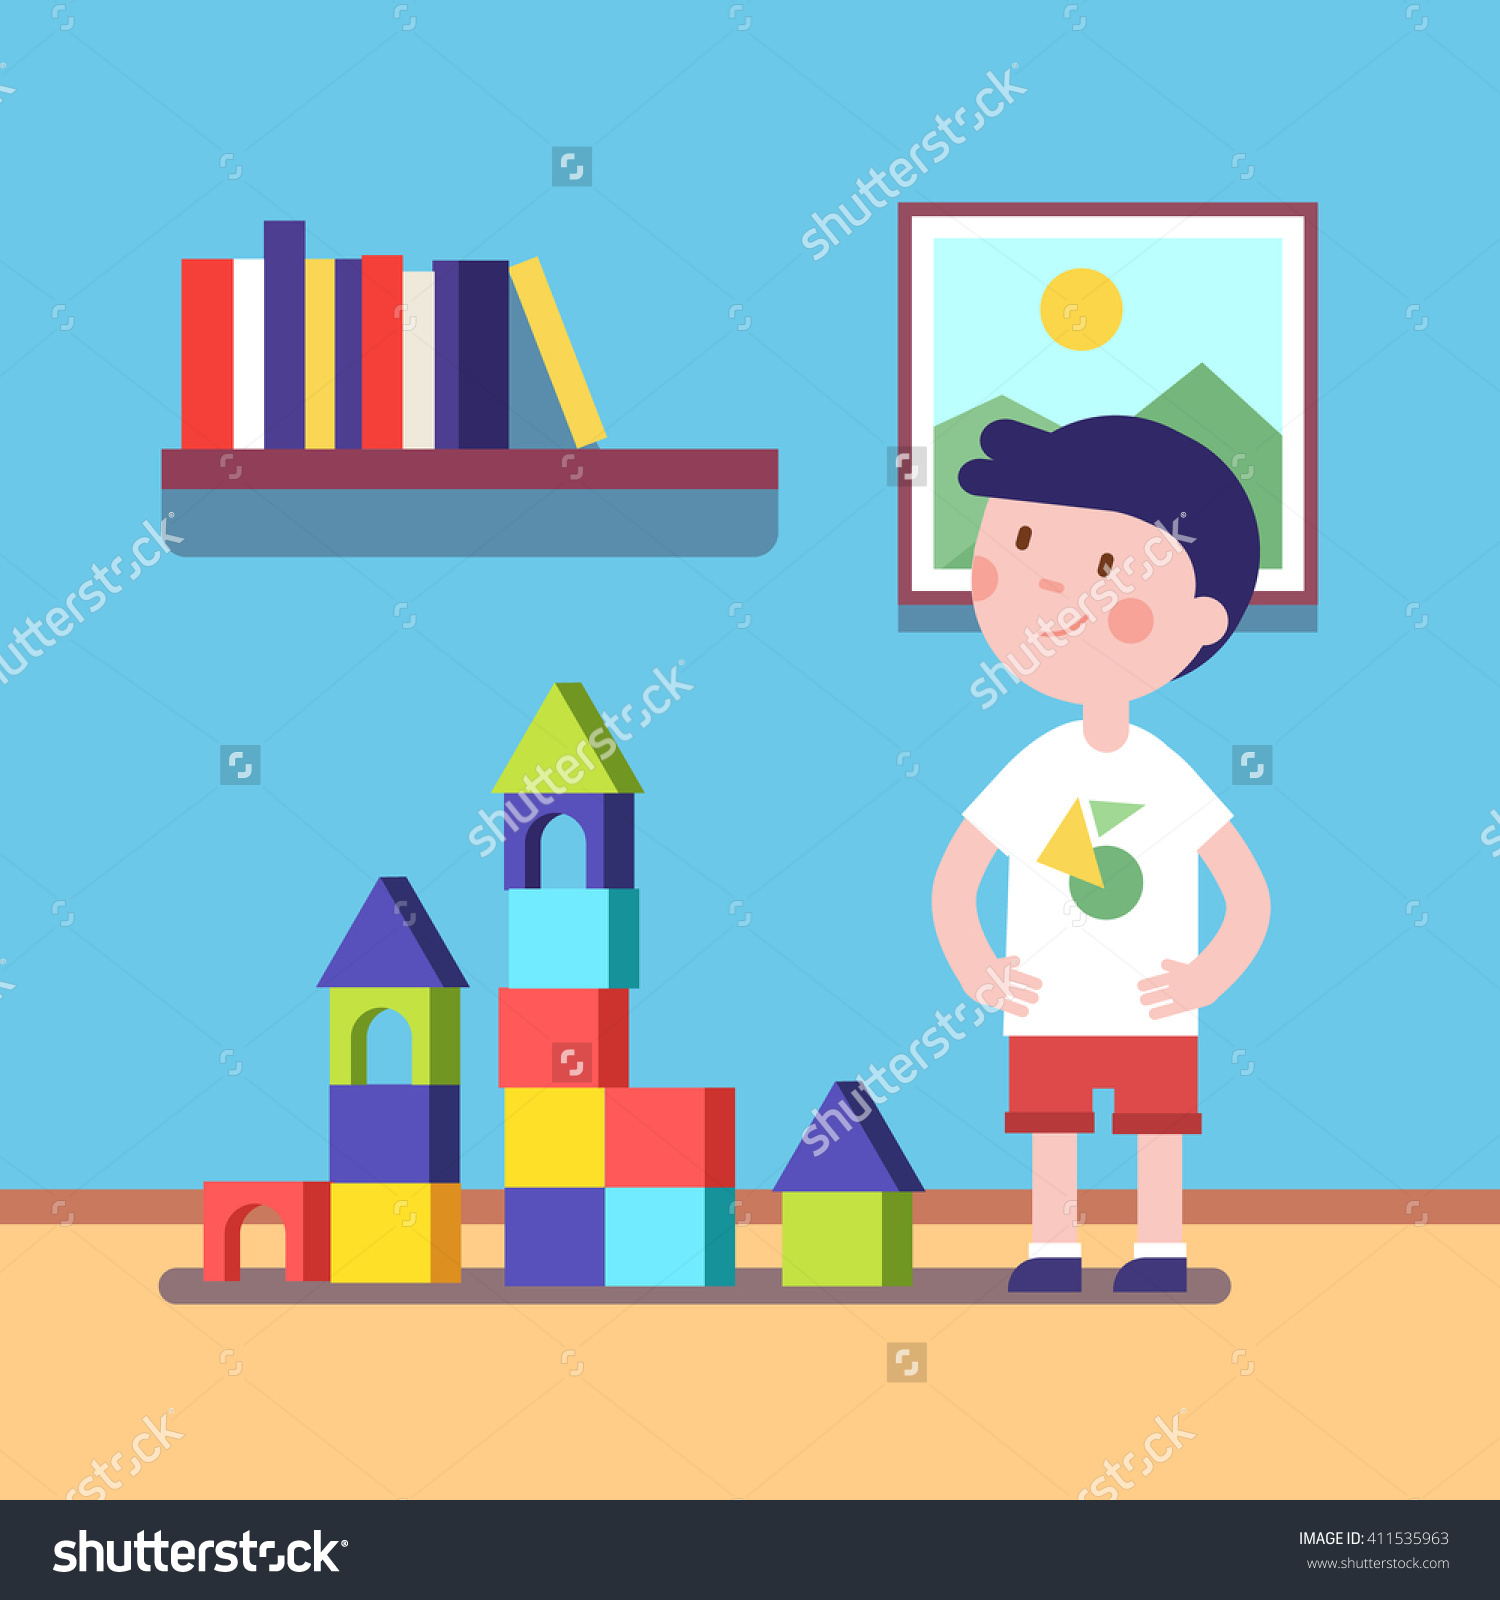 Building blocks game clipart image black and white stock Boy Build Castle Wooden Blocks Building Stock Vector 411535963 ... image black and white stock